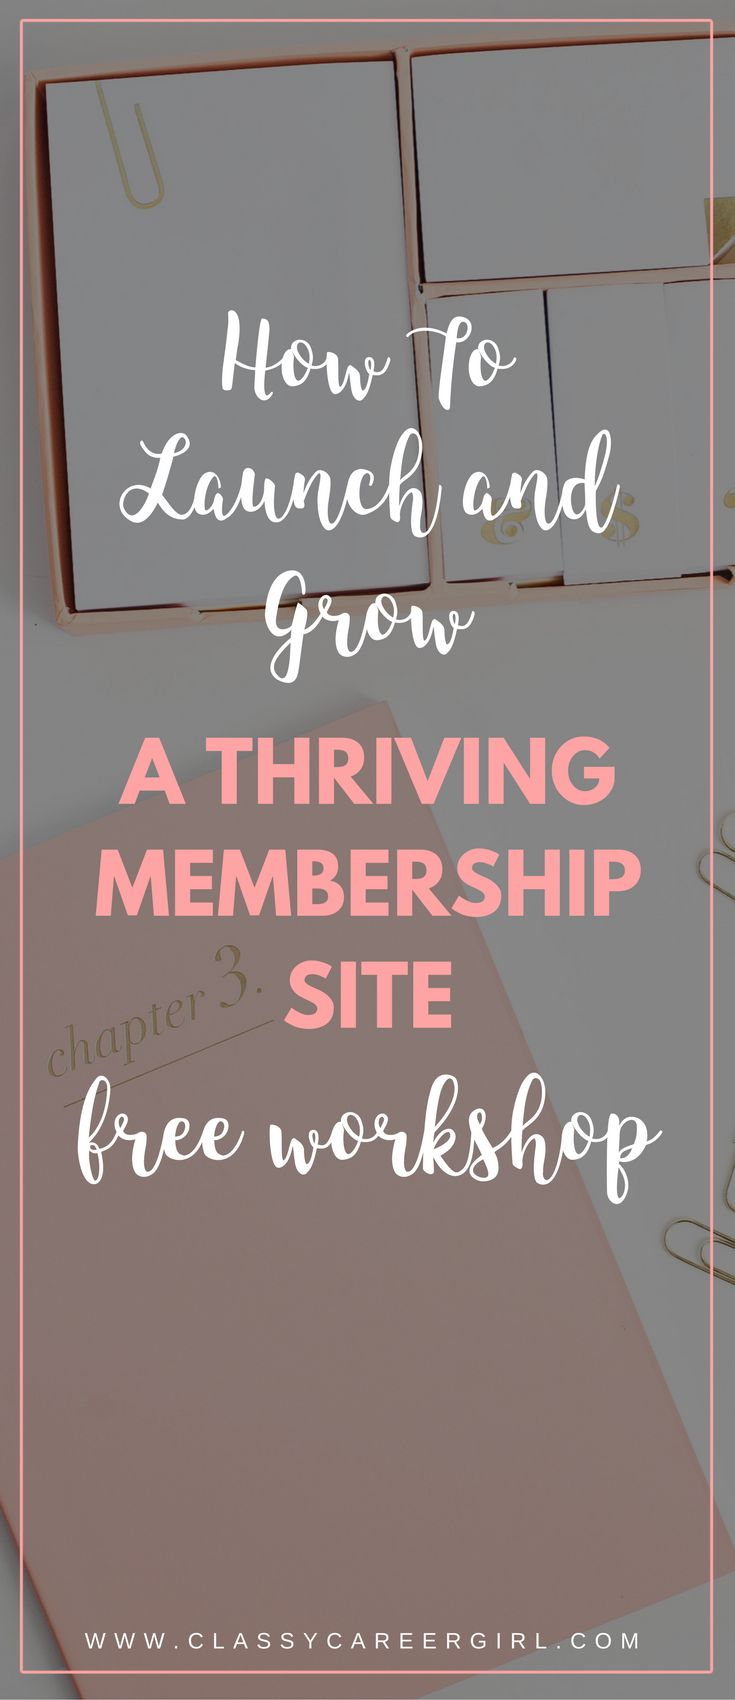 How to Launch and Grow a Thriving